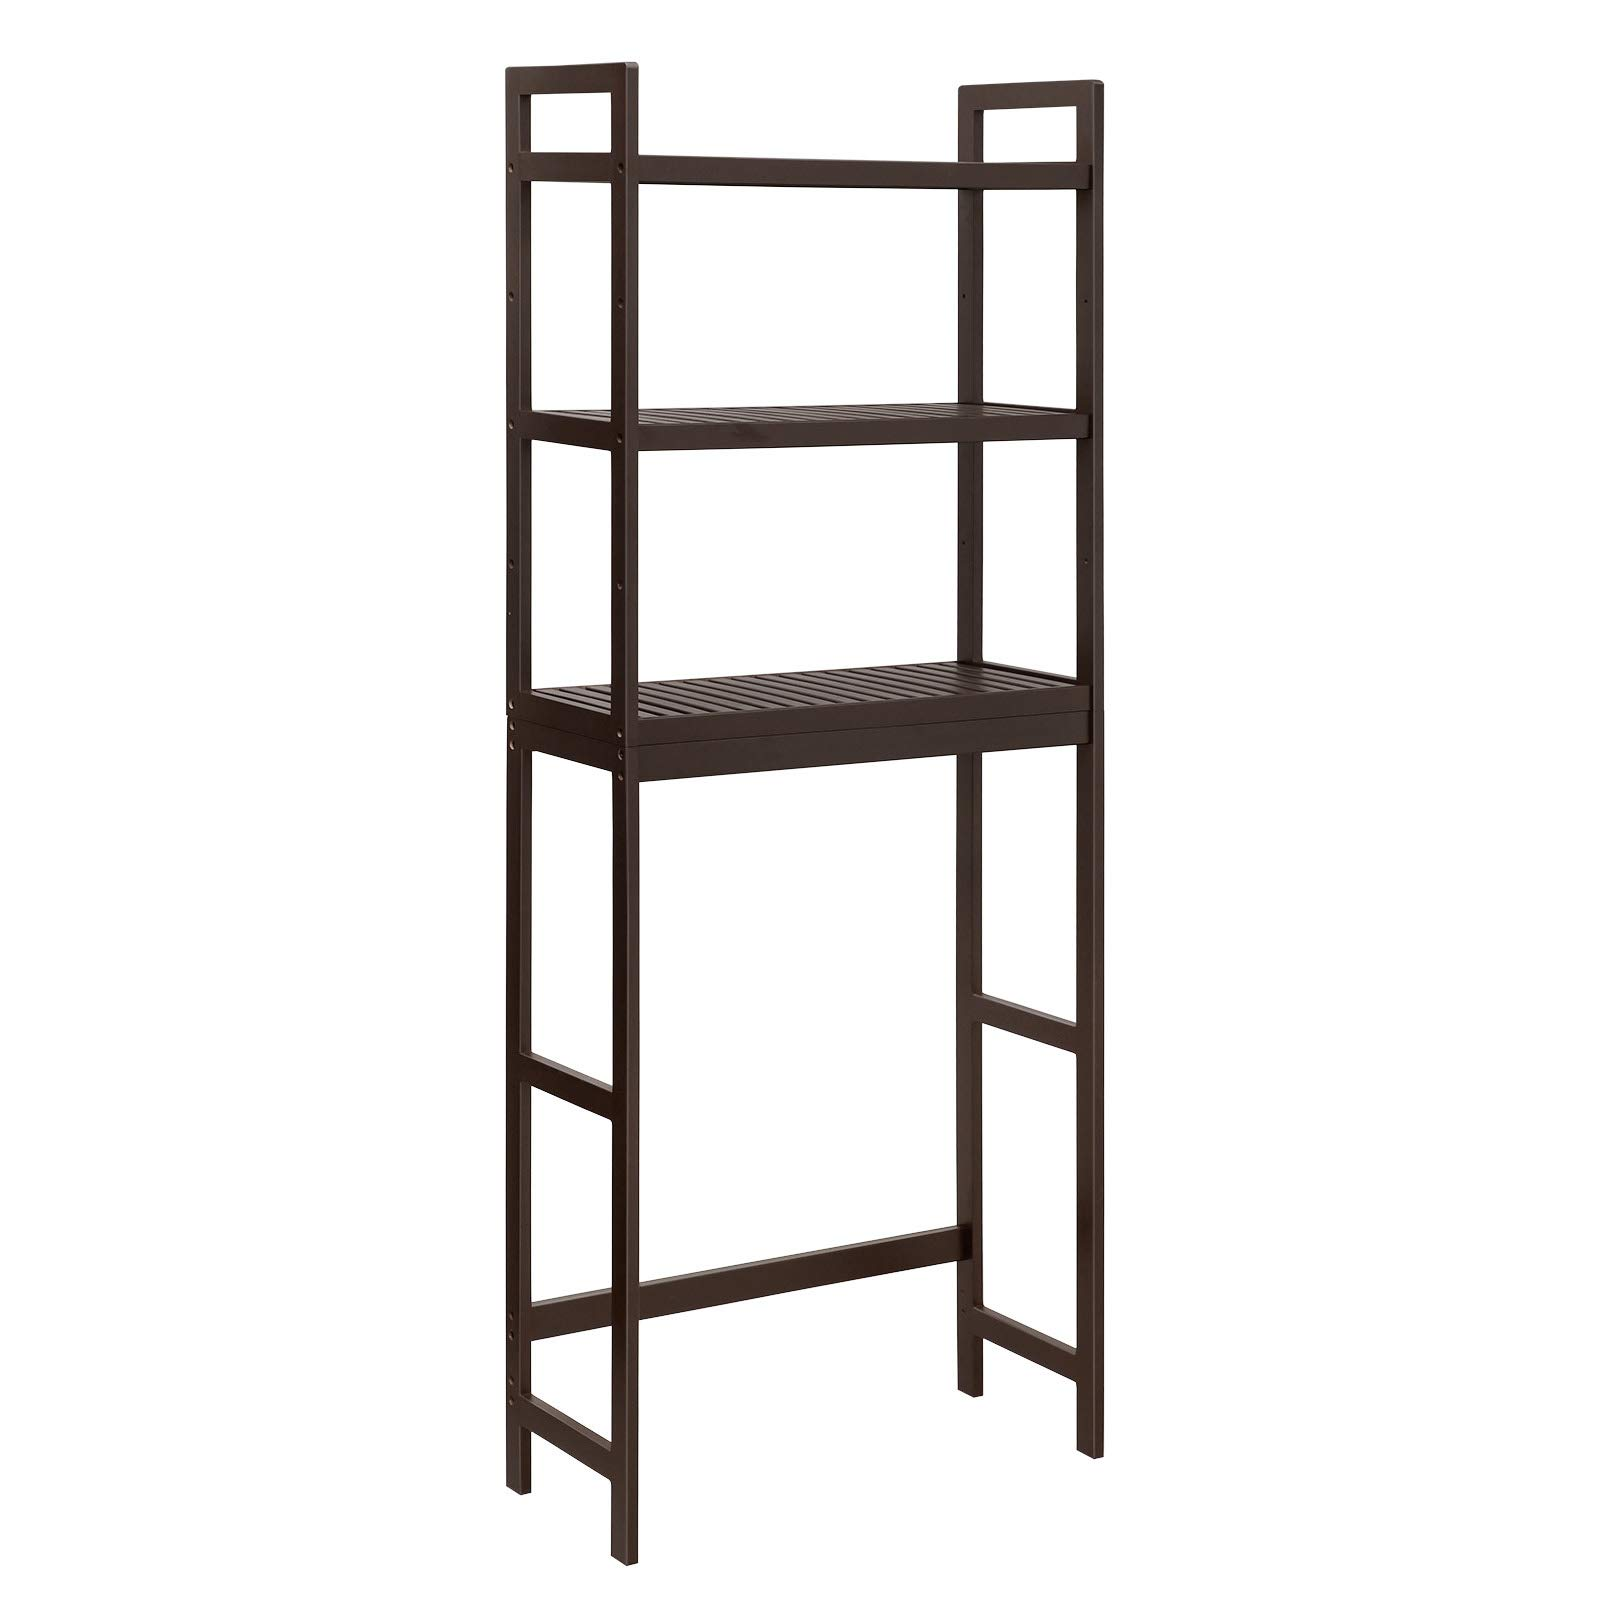 SONGMICS Over-The-Toilet Storage, 3-Tier Bathroom Organizer with Adjustable Shelves, Space Saver Toilet Rack for Bath Essentials, Load Capacity 33 lb per Tier, Easy to Assembly, Bamboo Brown UBTS01BR